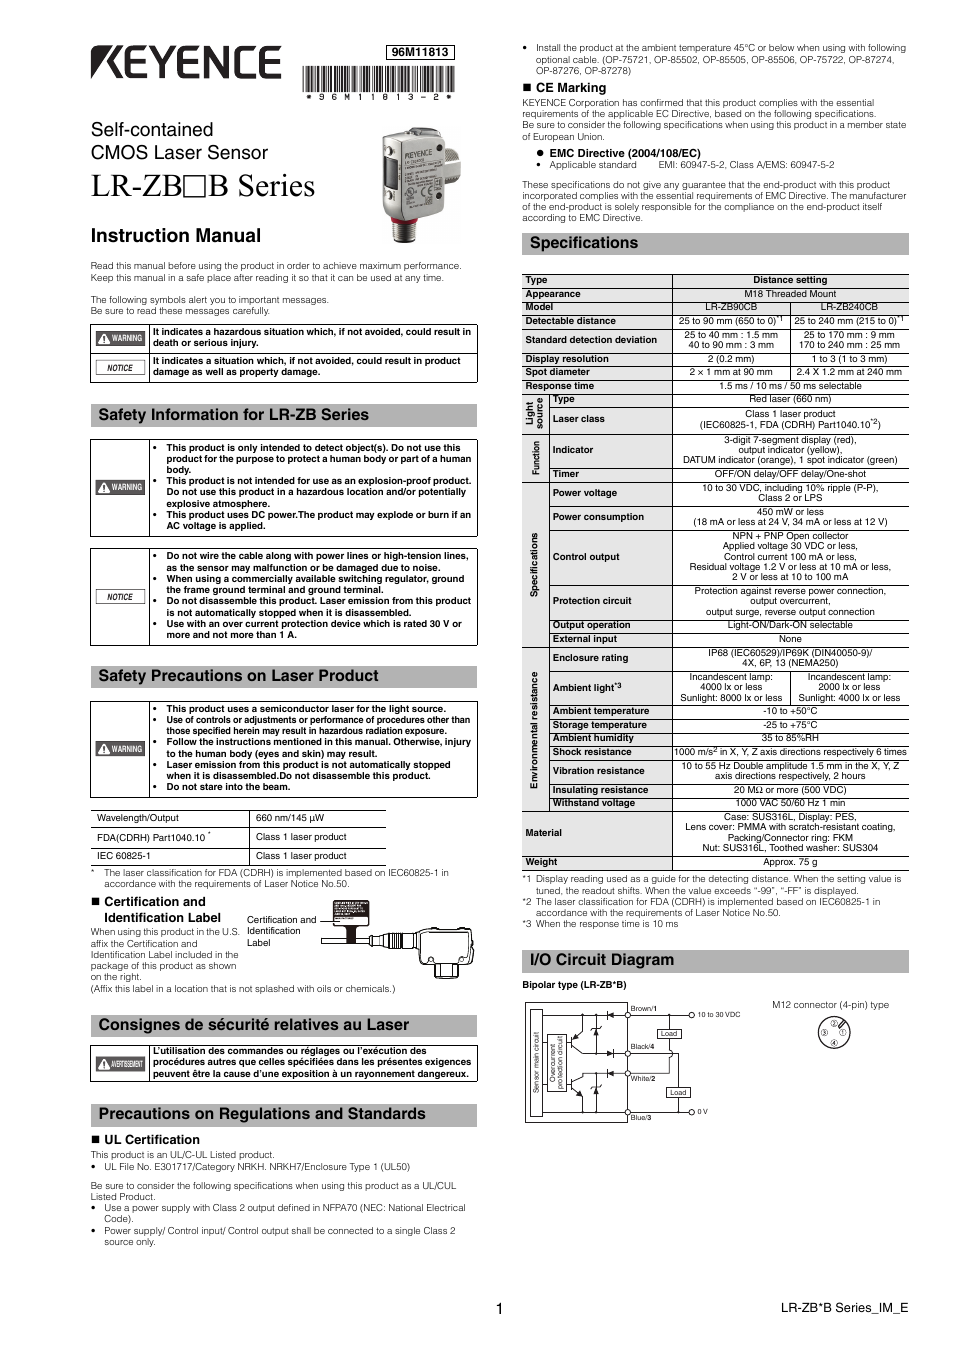 KEYENCE LR-ZBxxB User Manual | 3 pages